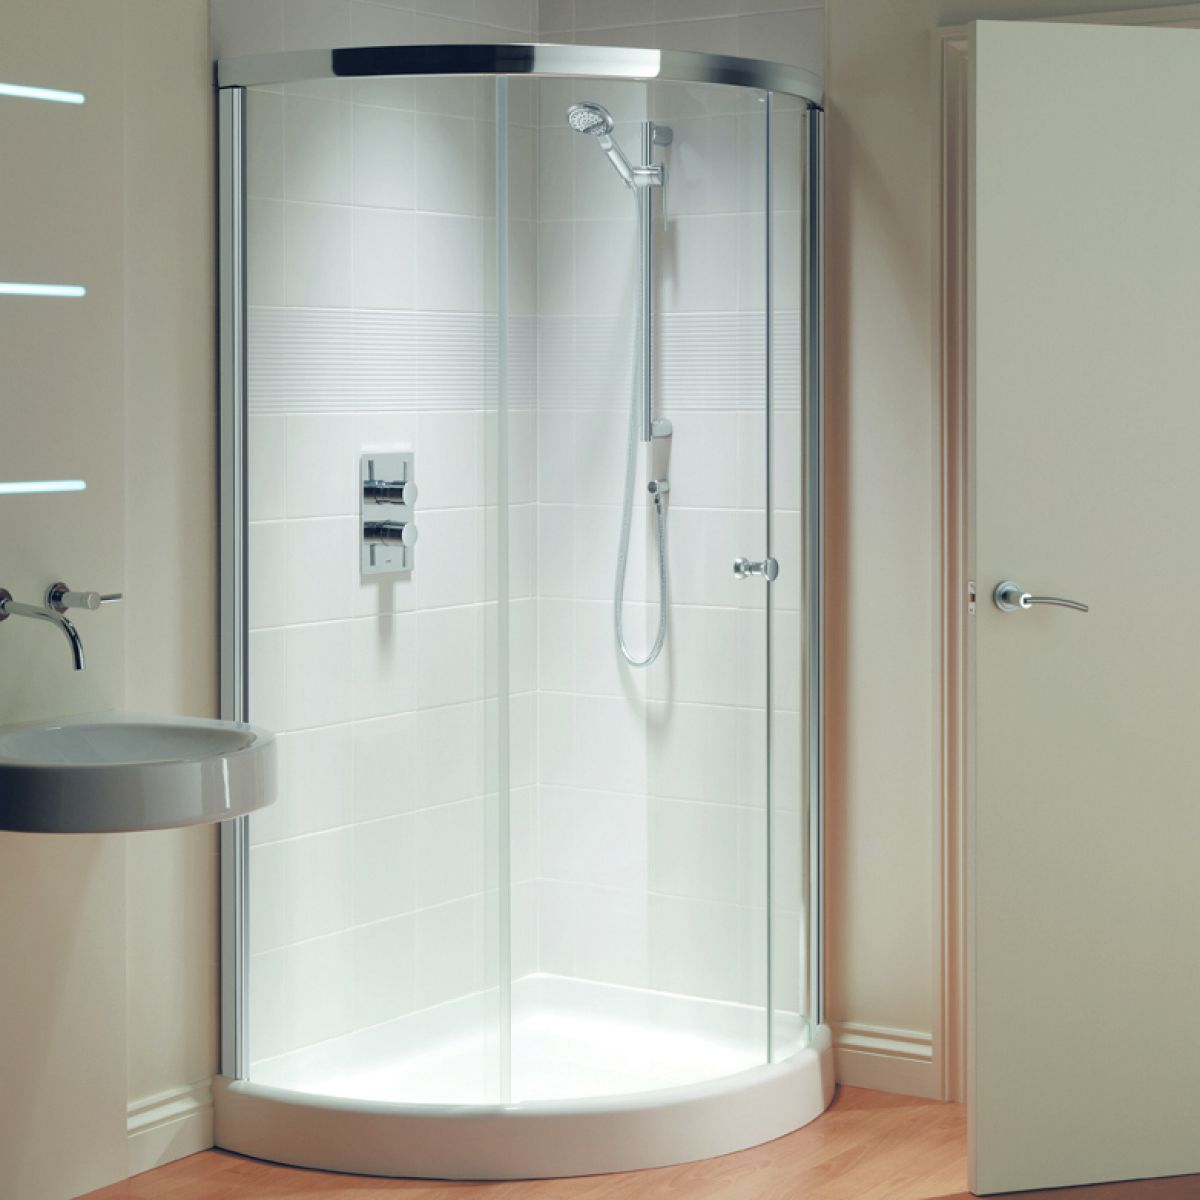 Matki Original Radiance Curved Offset Corner Shower